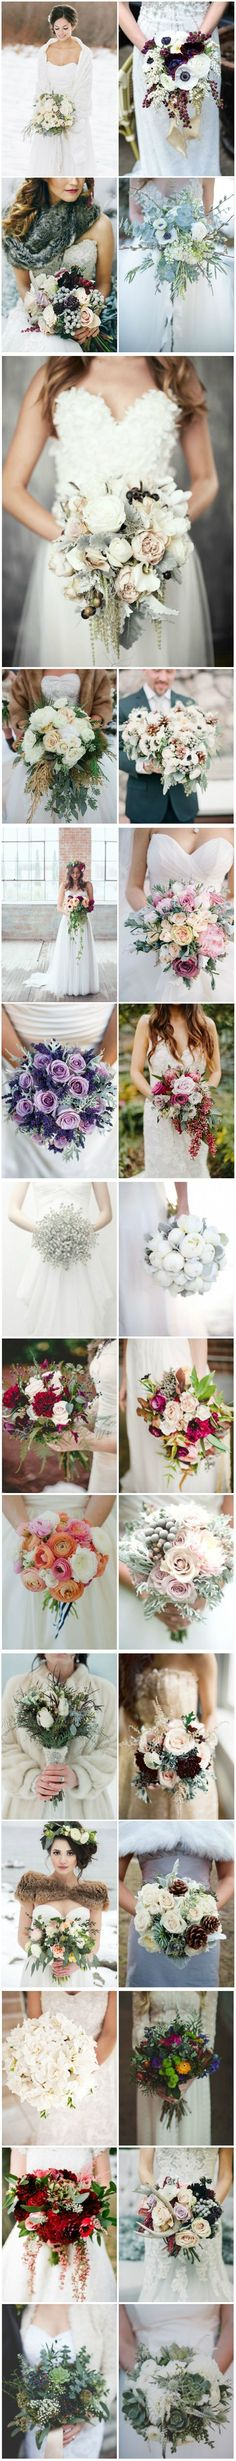 Lovely shades of all kinds of flowers for your winter bouquet http://www.thebridalbox.co.uk